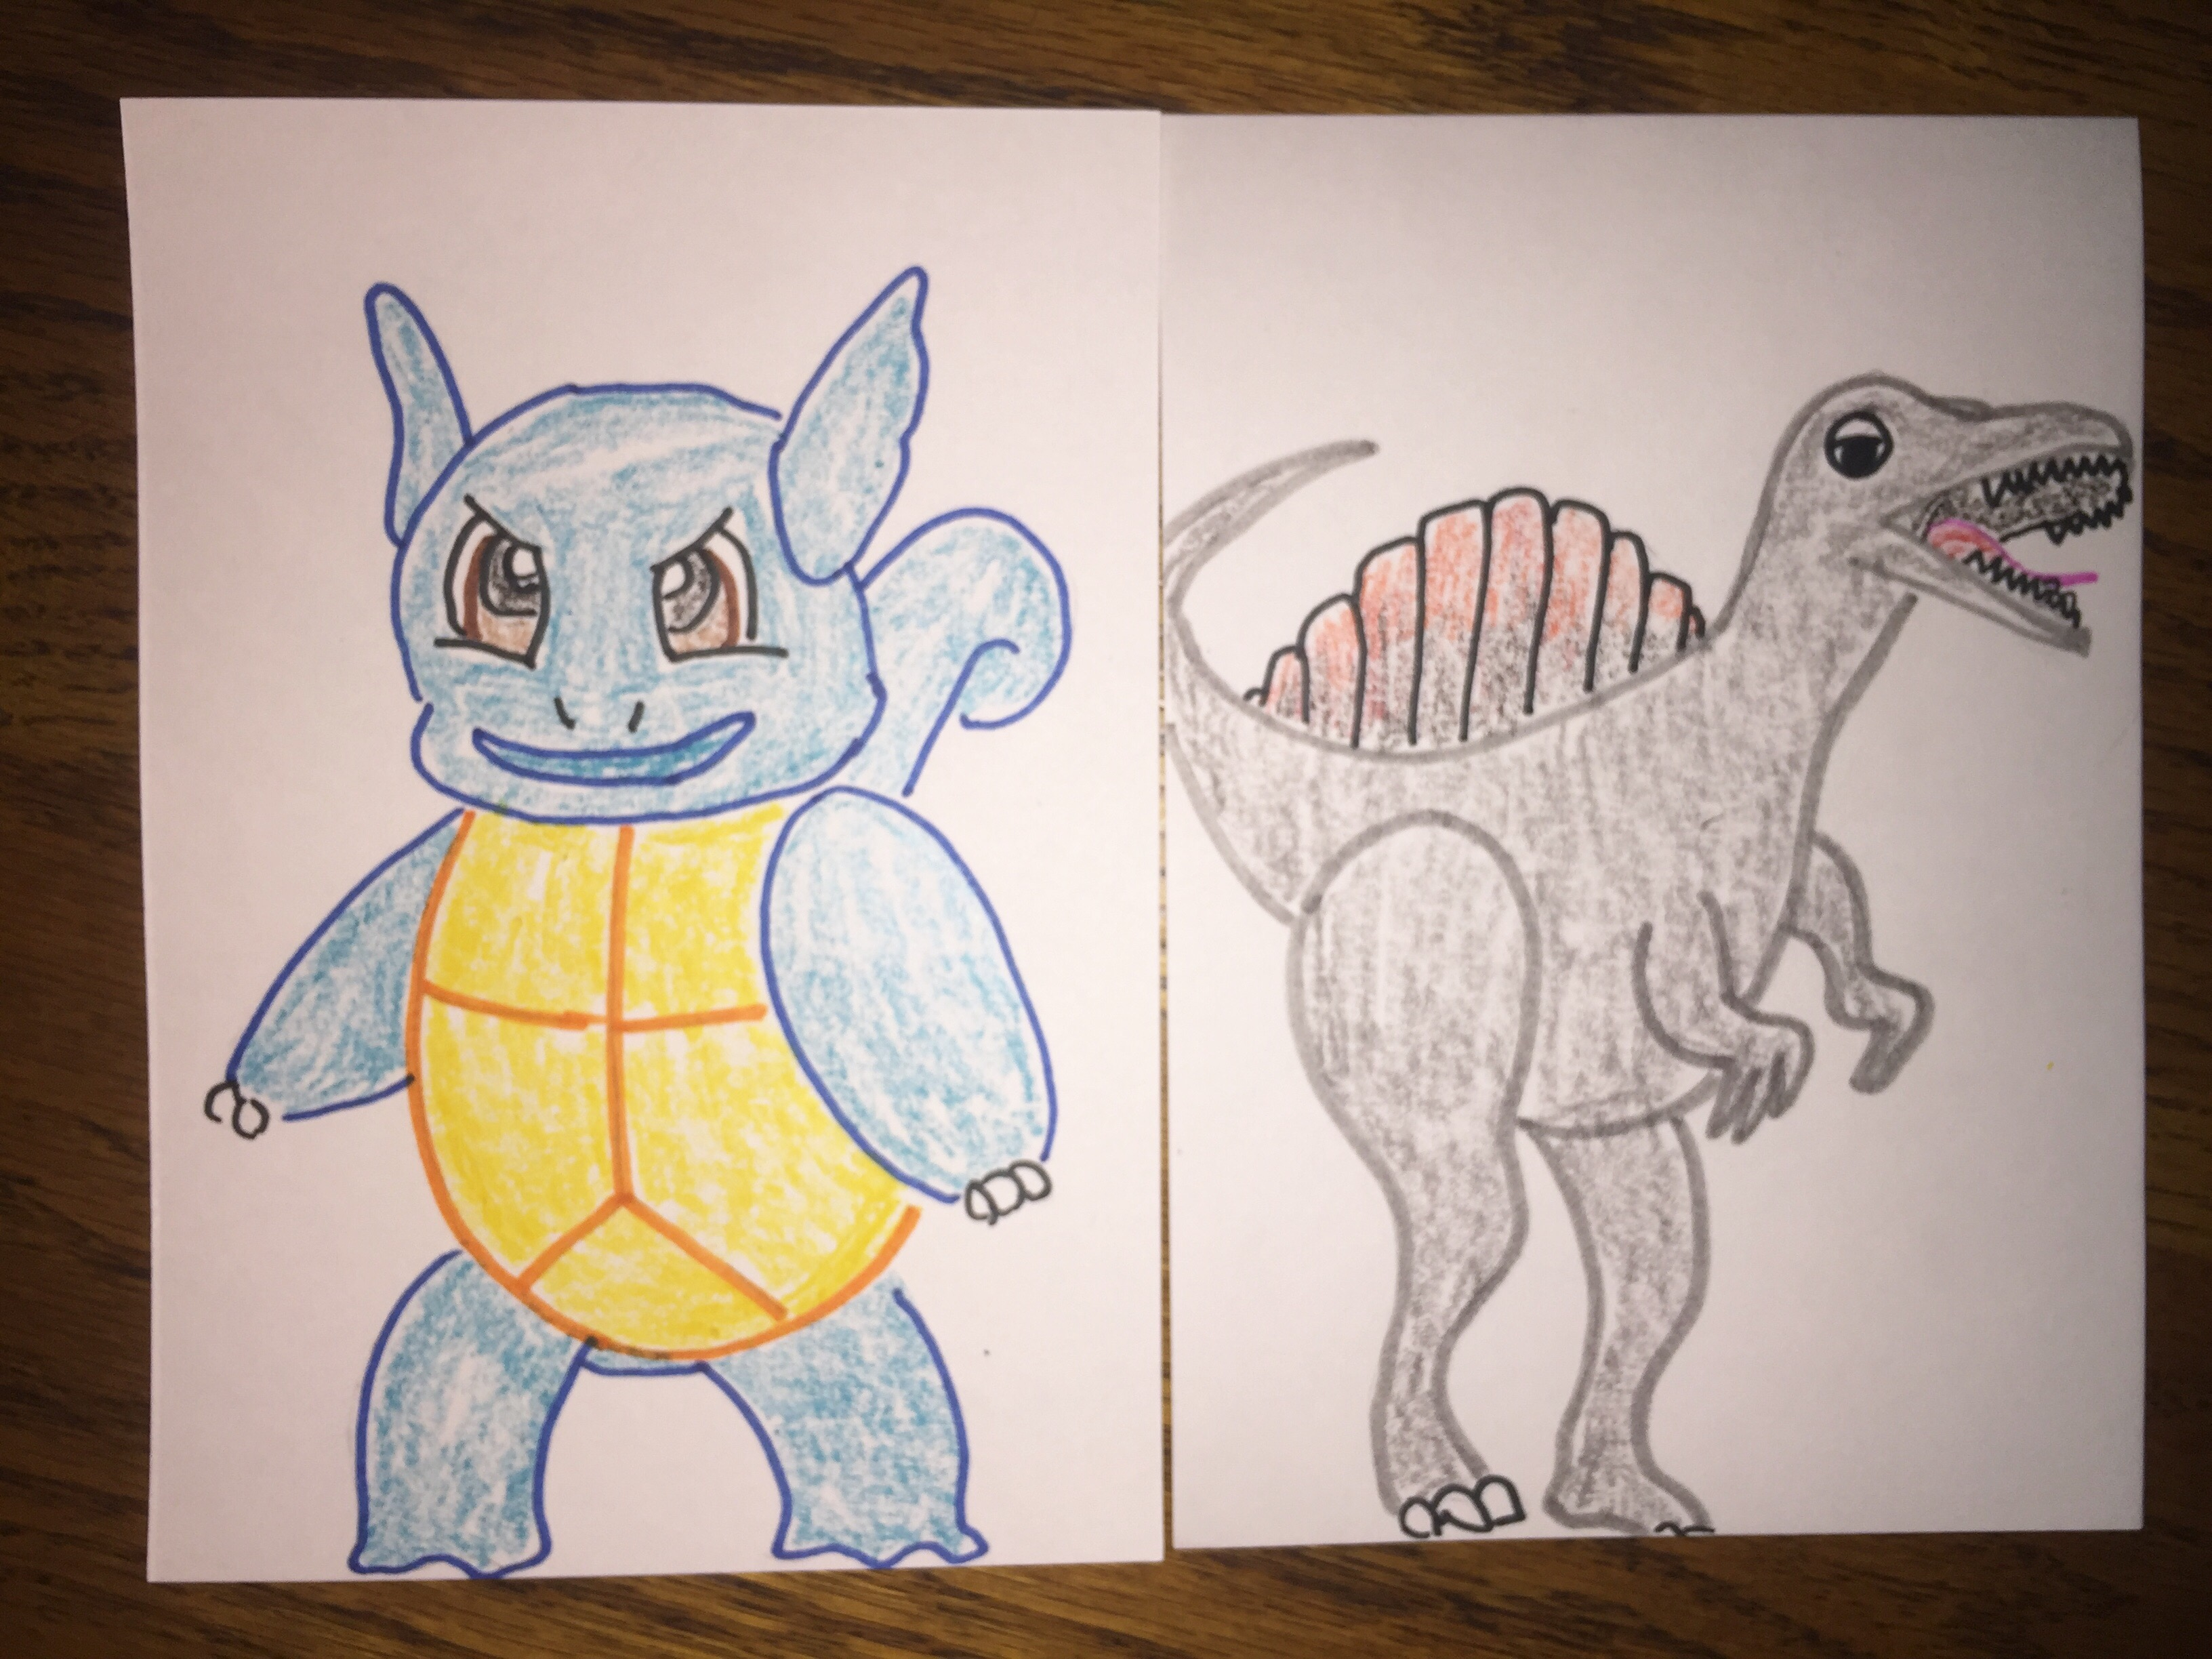 a drawing of a Wartortle and Spinosaurus